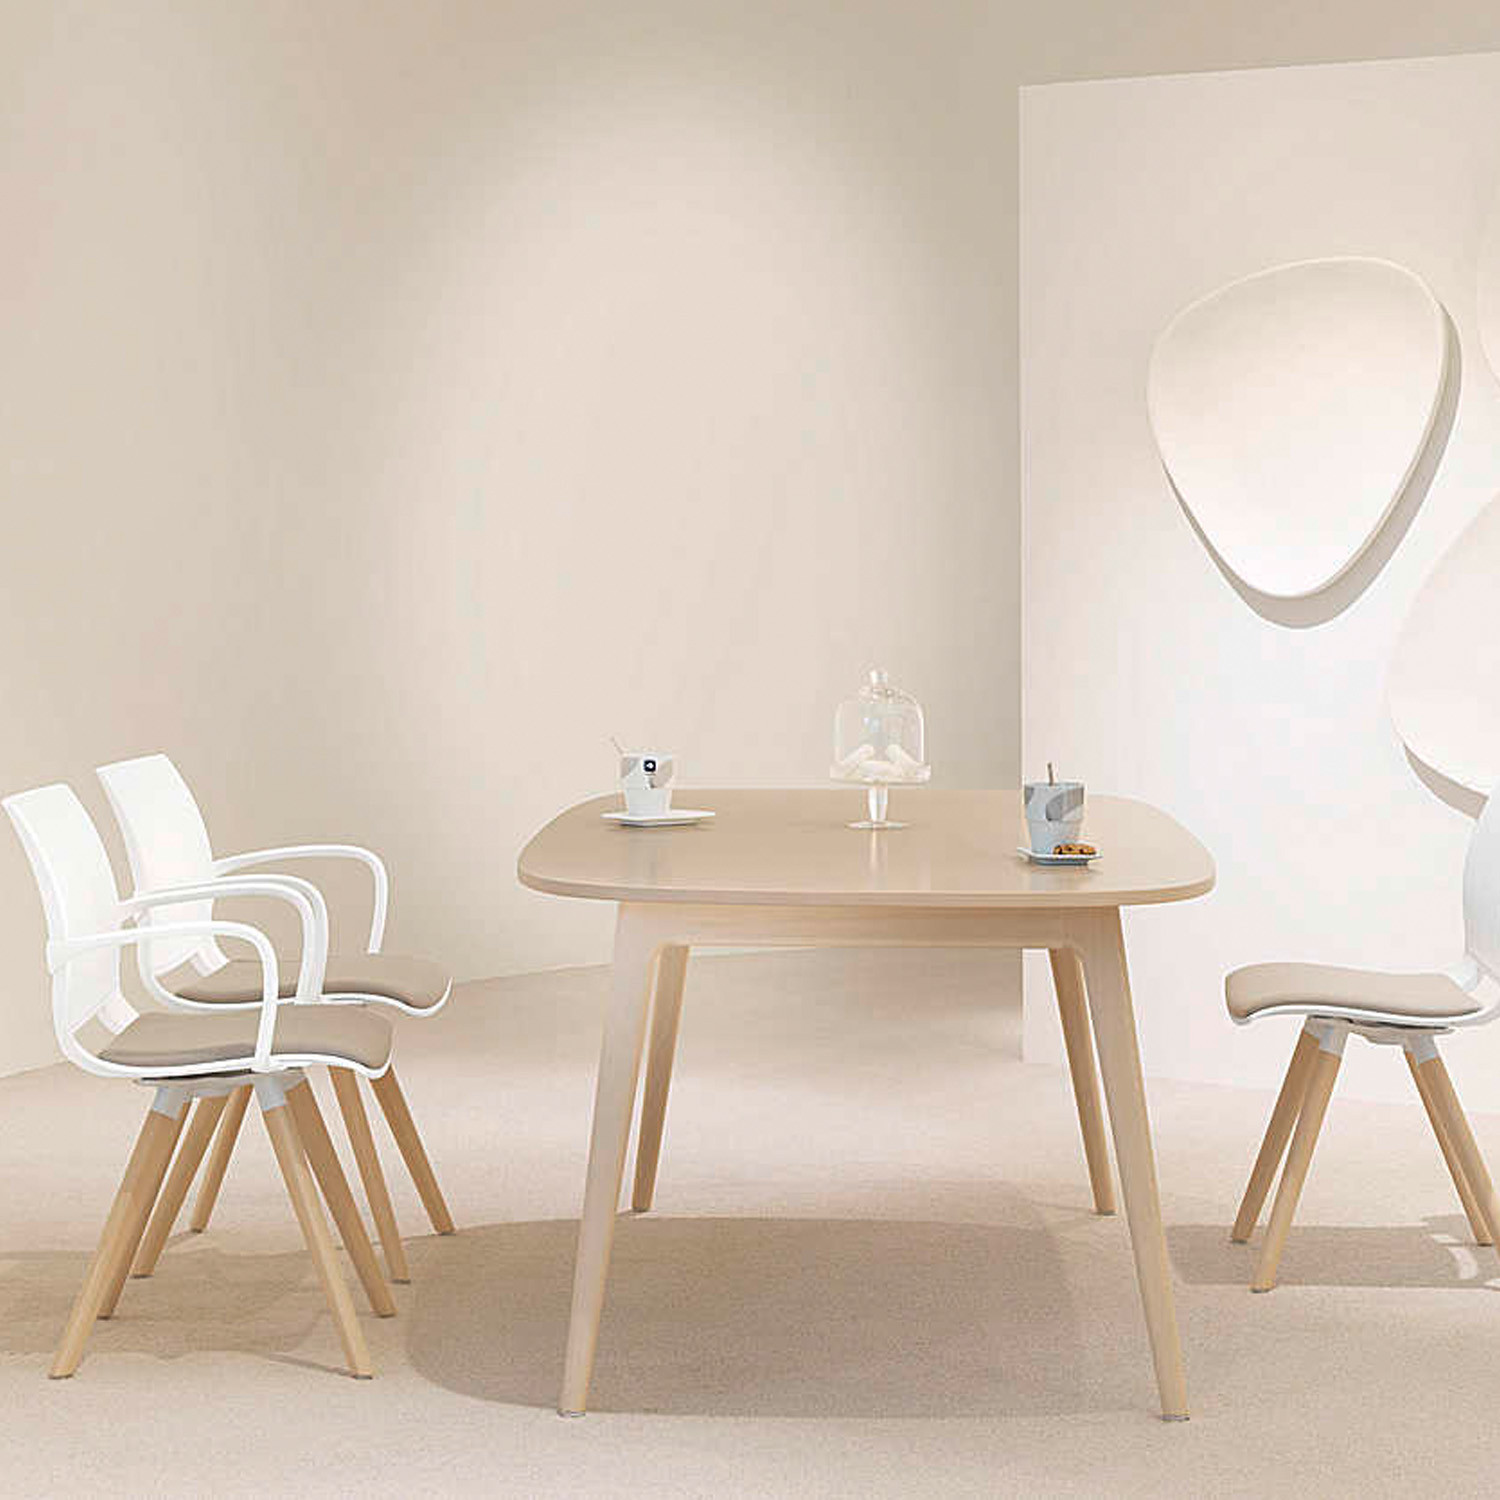 2080 Uni_Verso Dining Chairs